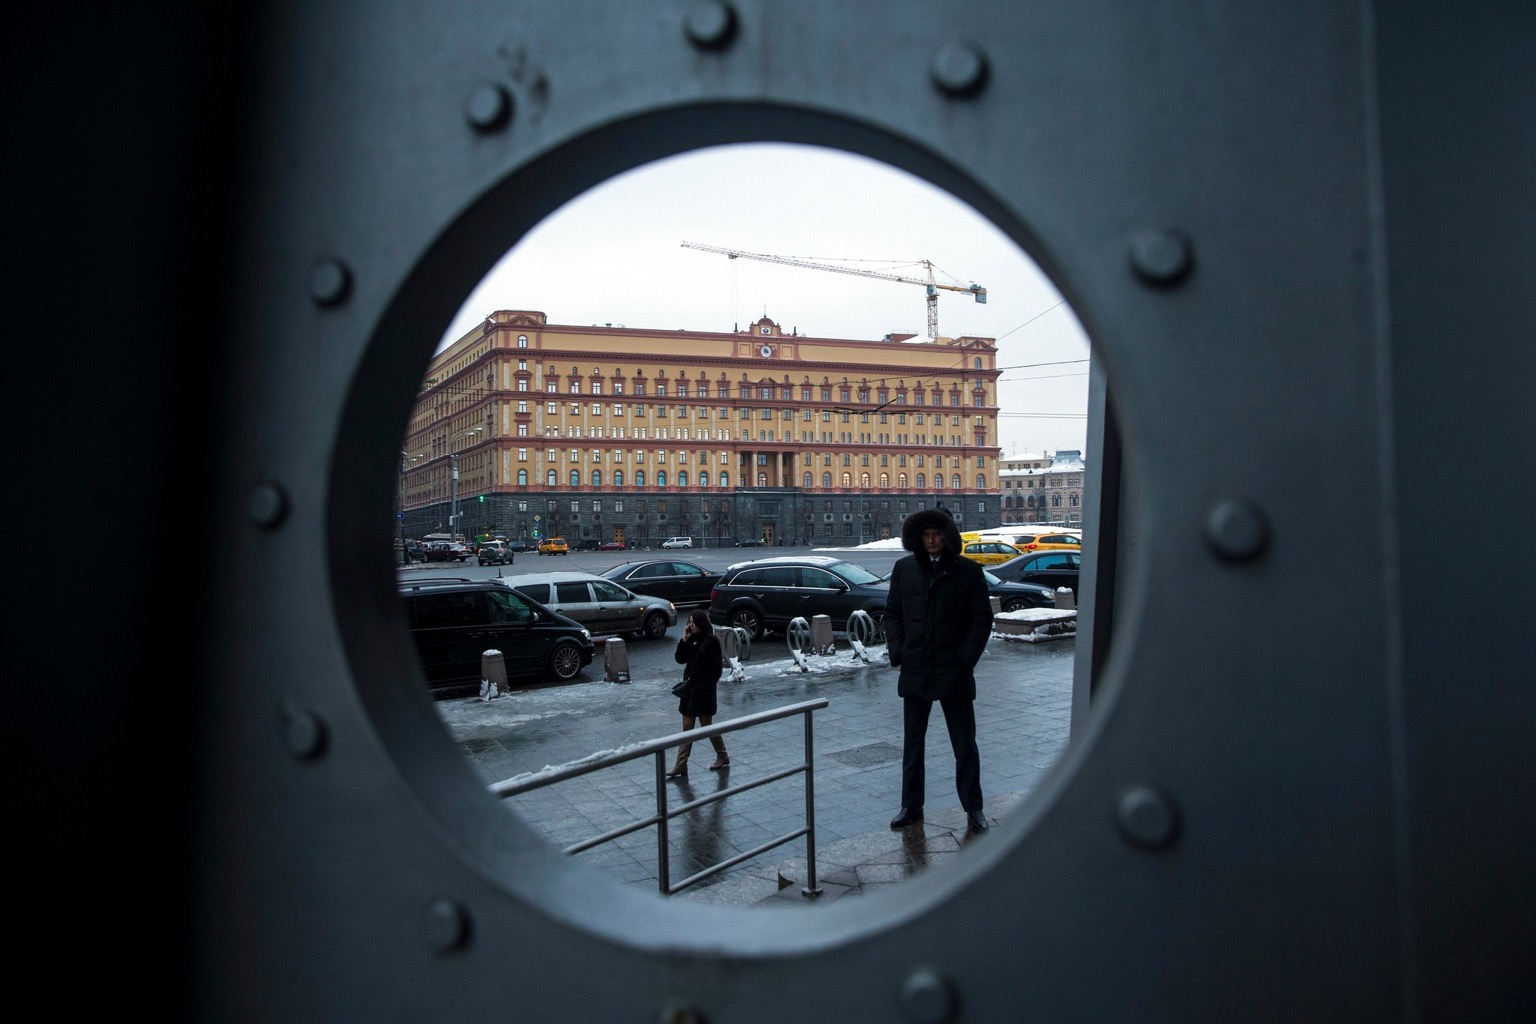 The headquarters of the Russian F.S.B., the main successor to the Soviet-era K.G.B., in Moscow. Pavel Golovkin/AP